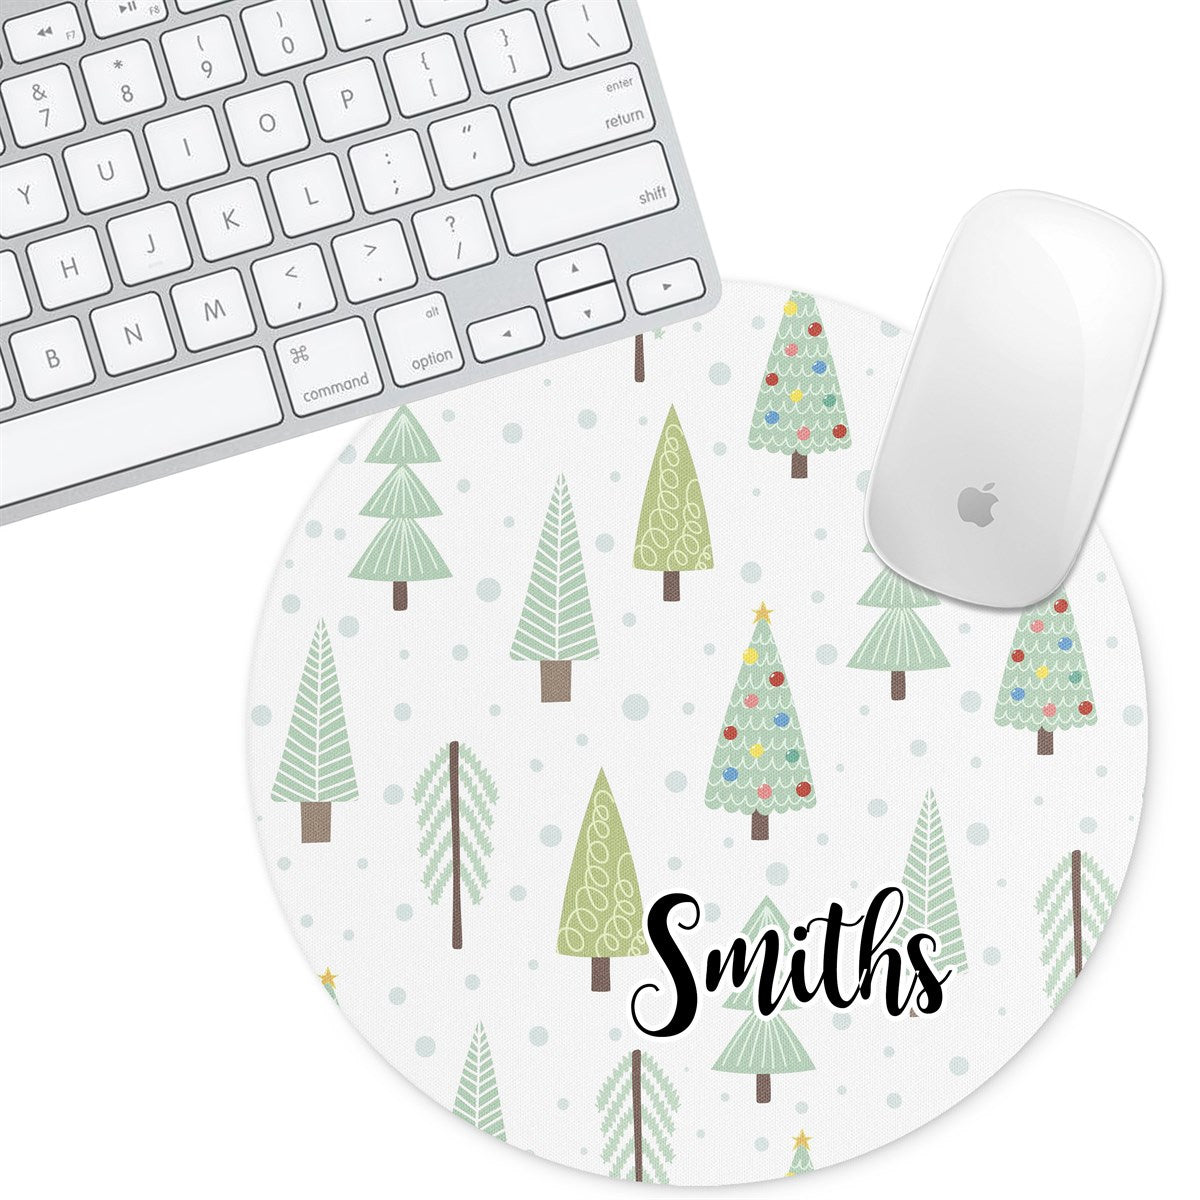 Personalized Round Mouse Pad - Timber - Second East